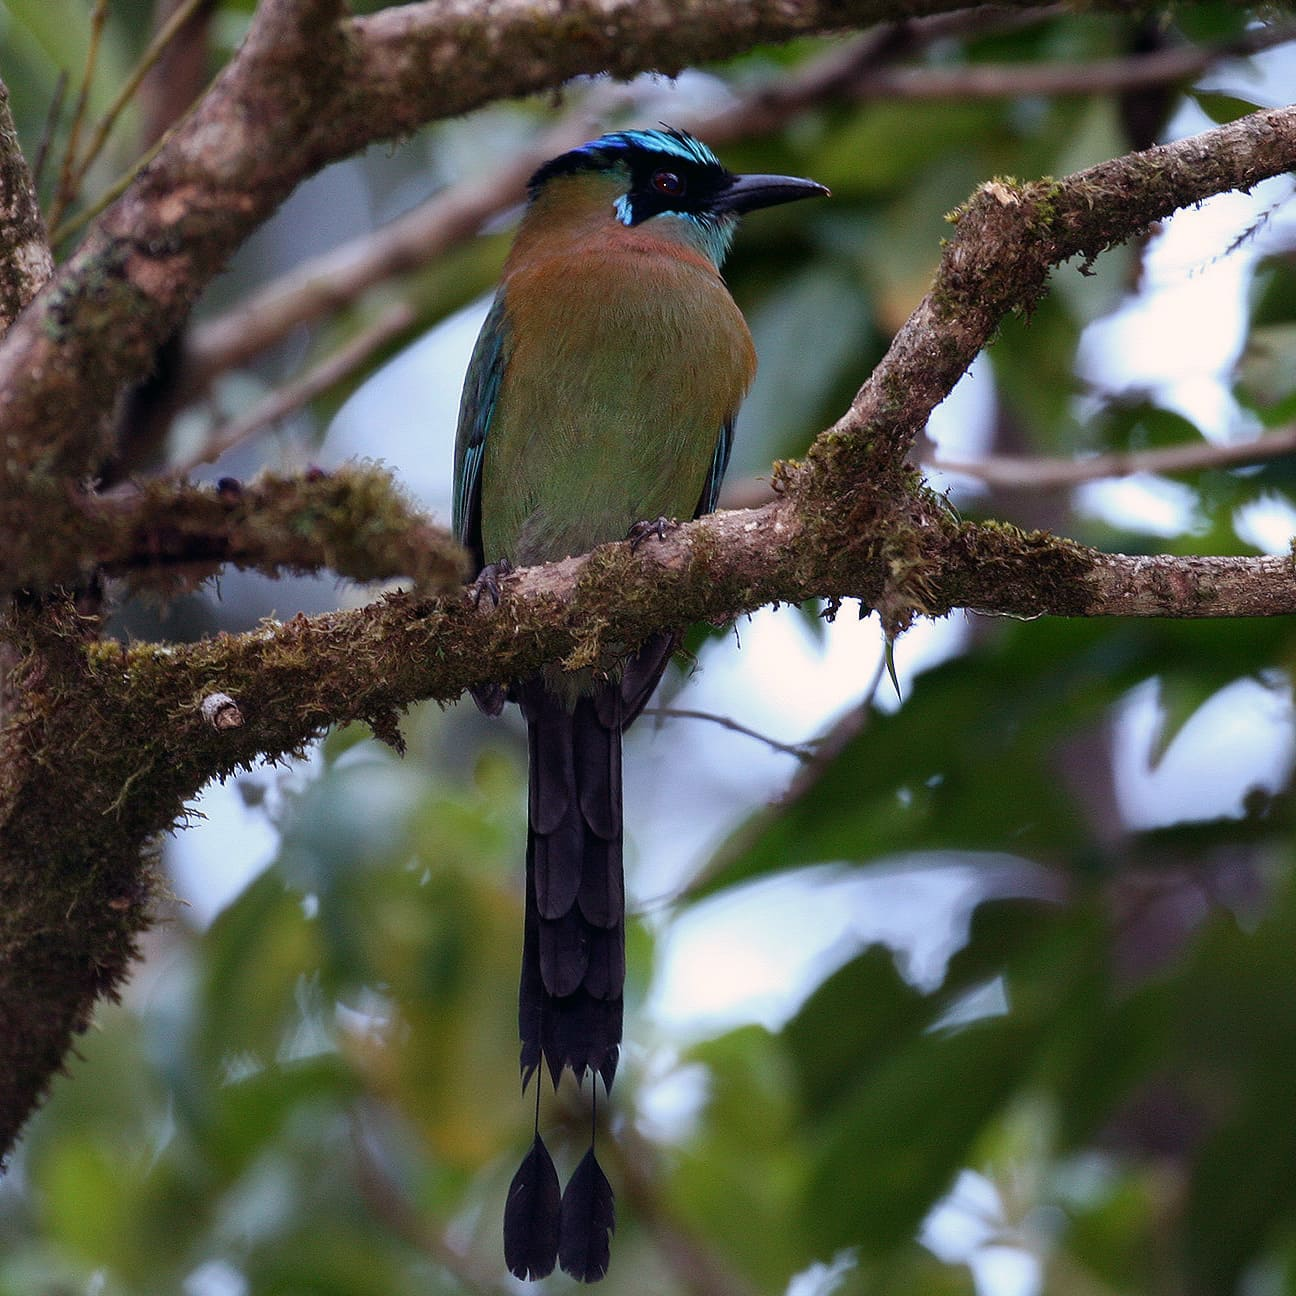 Motmot sitting in a tree